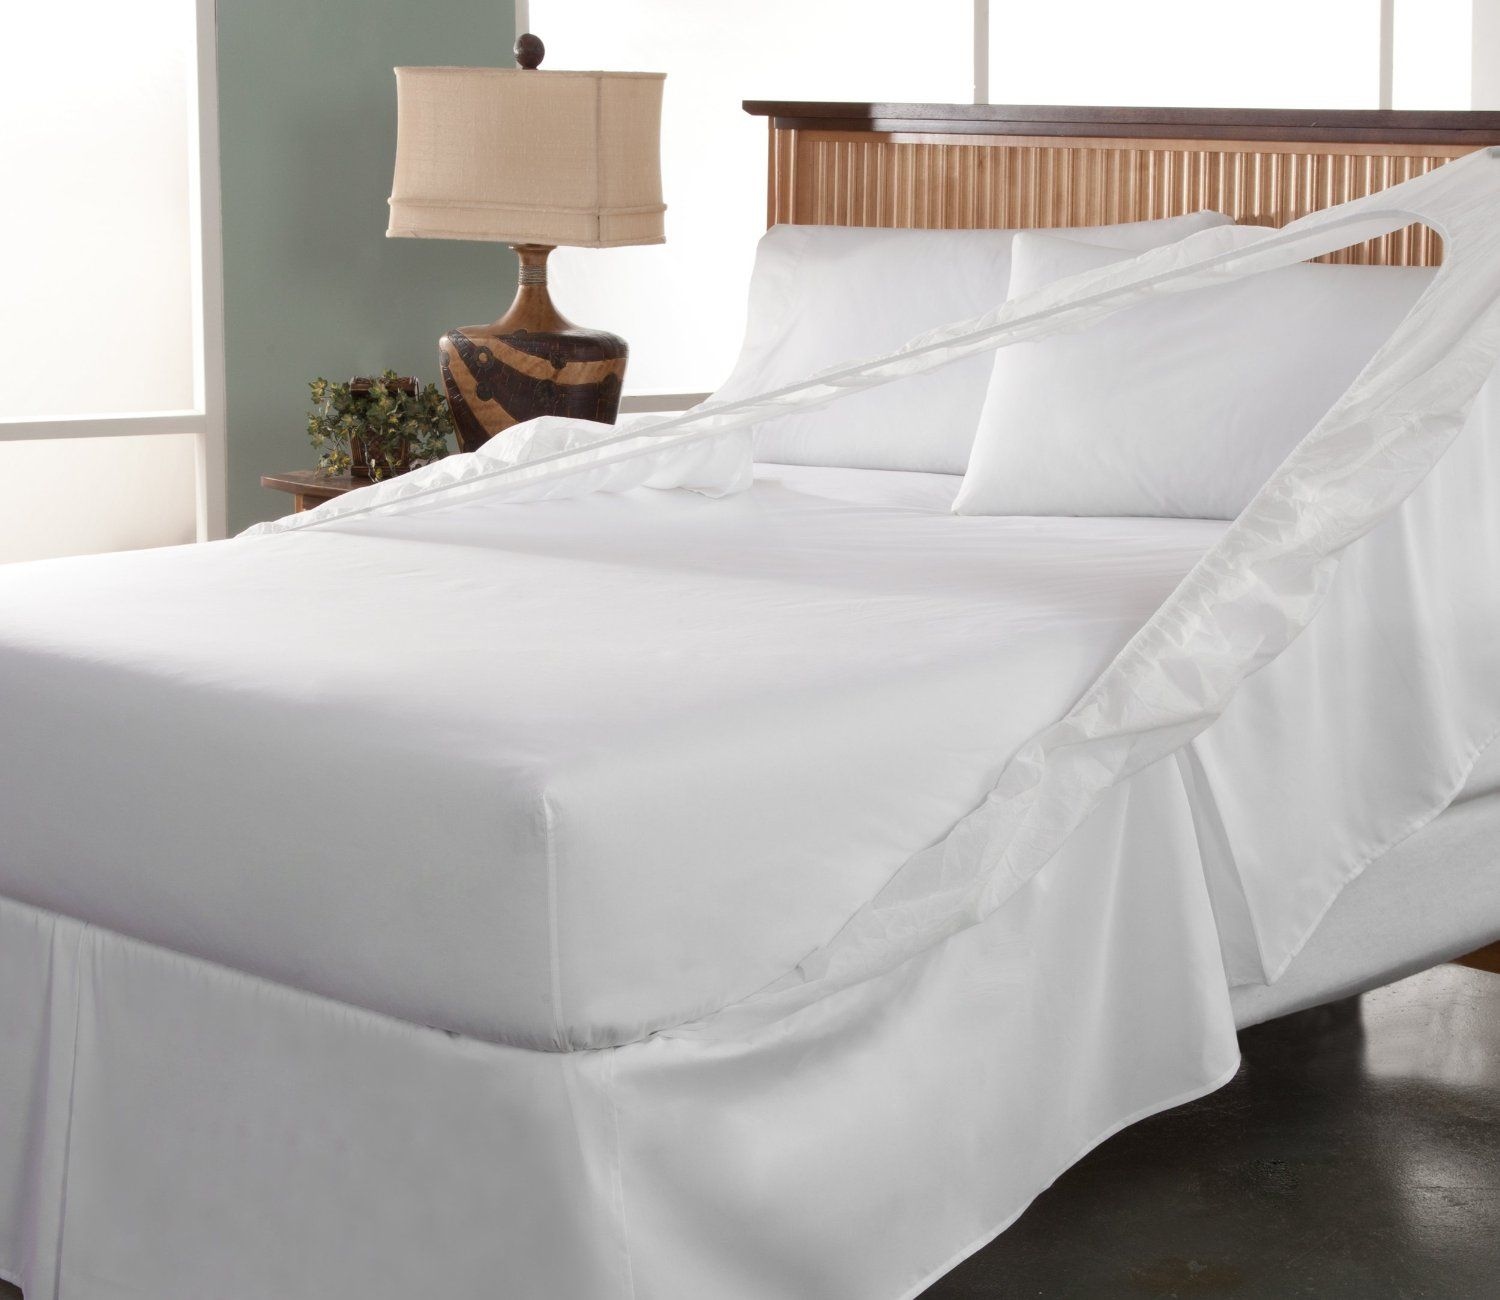 Perfect Fit Easy on Easy Off Bed Skirt and